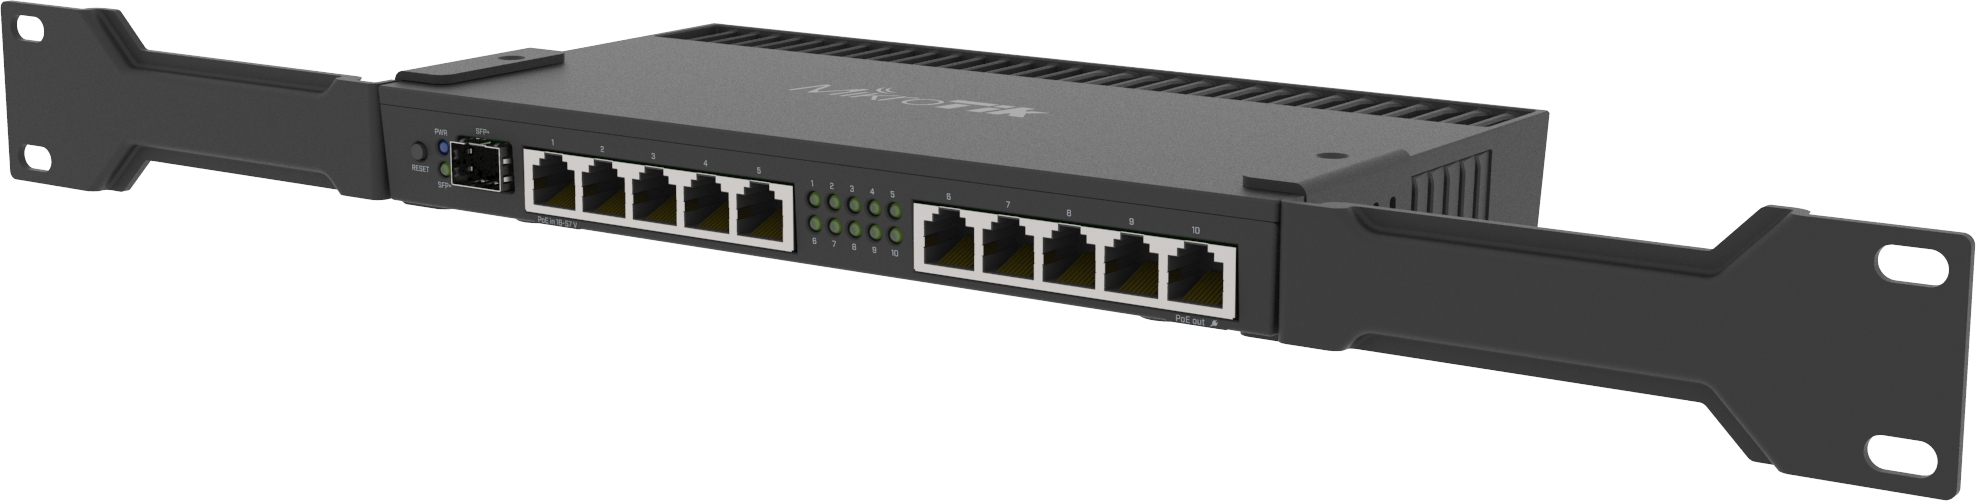 Specification sheet (buy online): MT-RB4011iGS-RM MikroTik Router